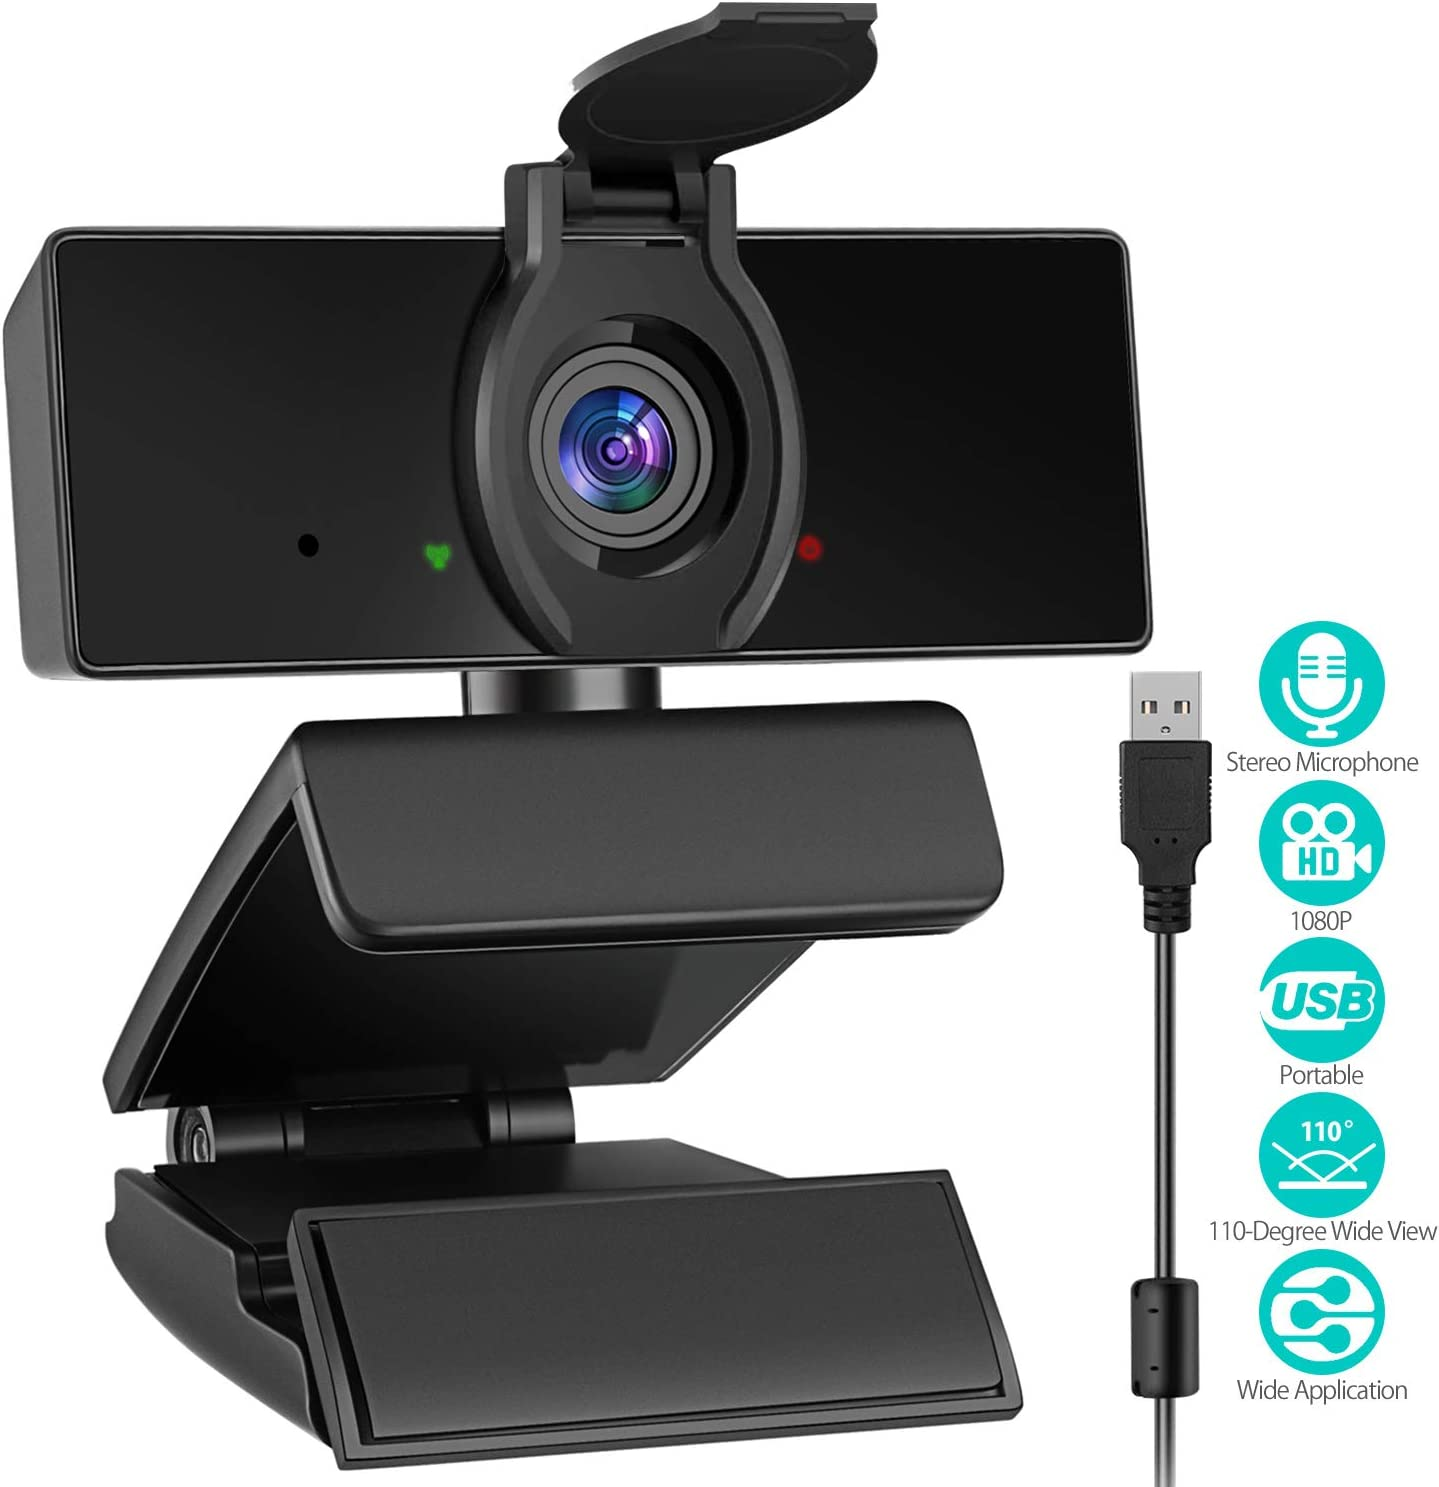 1080P Webcam with Microphone & Privacy Cover, USB Plug & Play Web Cam, Desktop Laptop Computer Web Camera for Video Streaming, Conference, Recording, Gaming, Online Classes